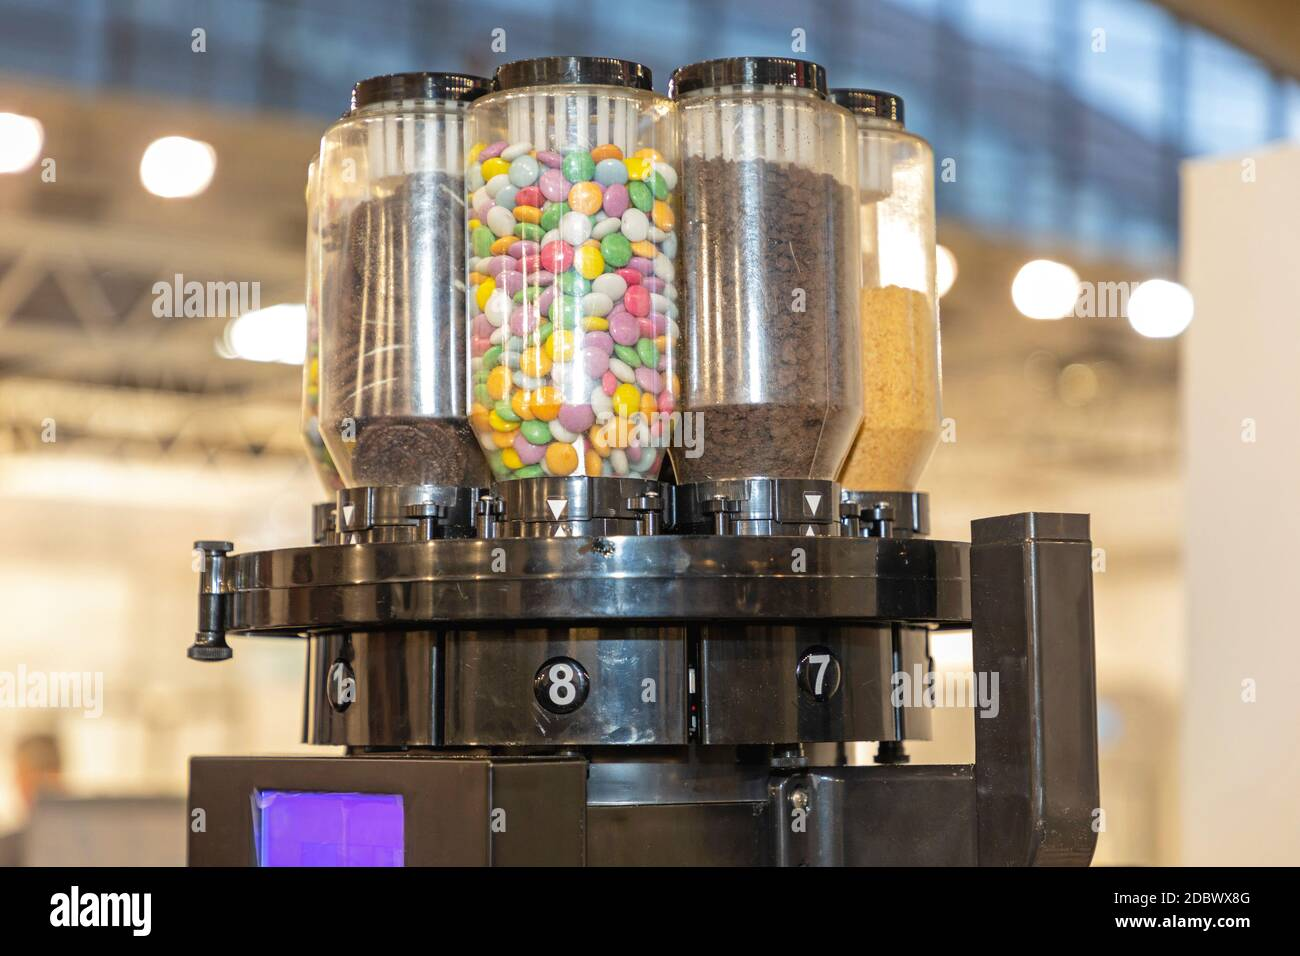 Automatic Dry Food Toppings Dispenser Machine Stock Photo Alamy